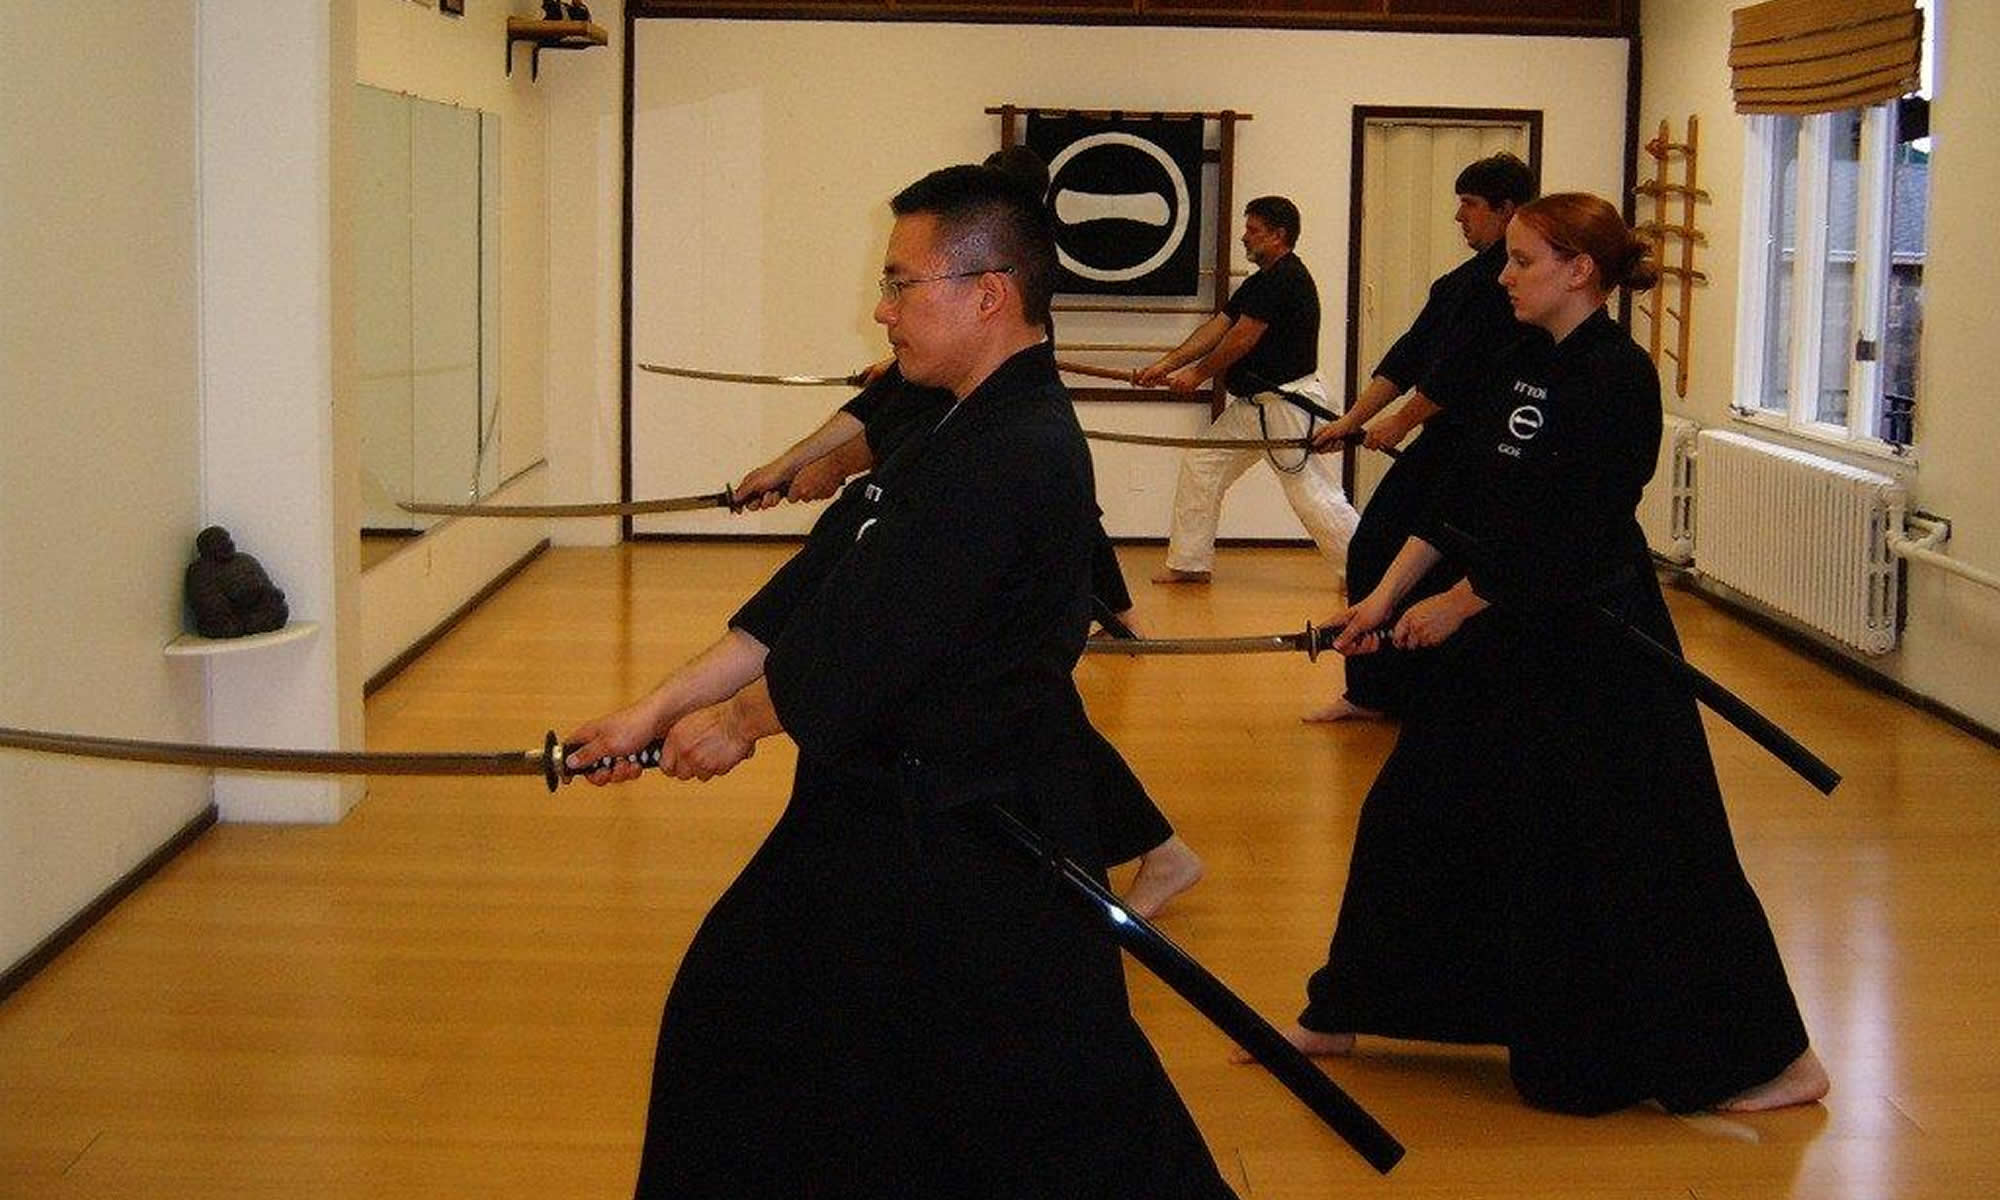 Ittokai Sword Club